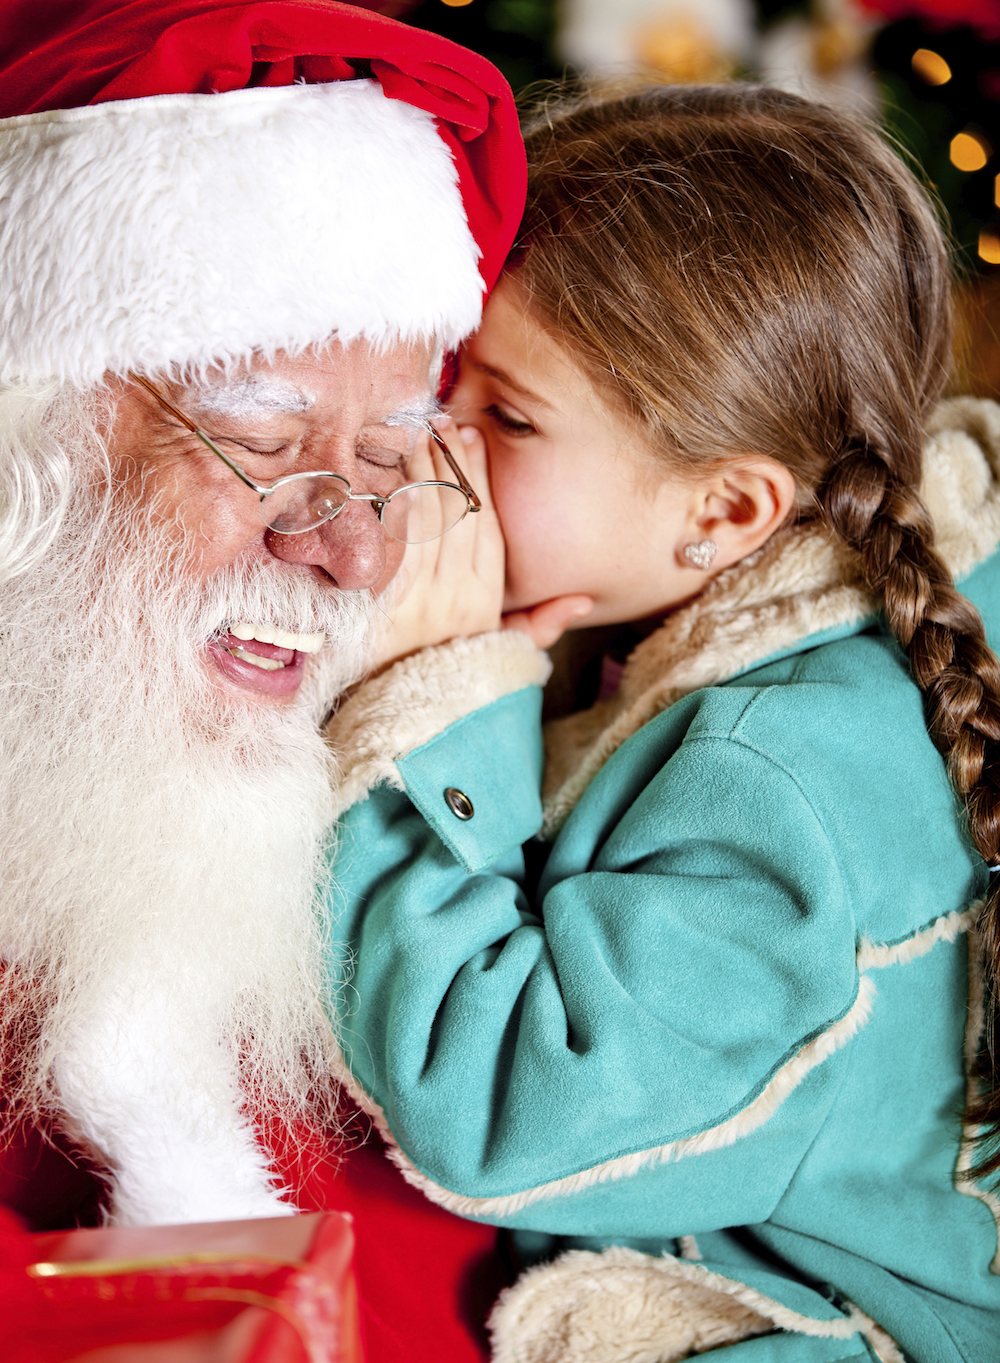 Little girl telling a secret to Santa Claus